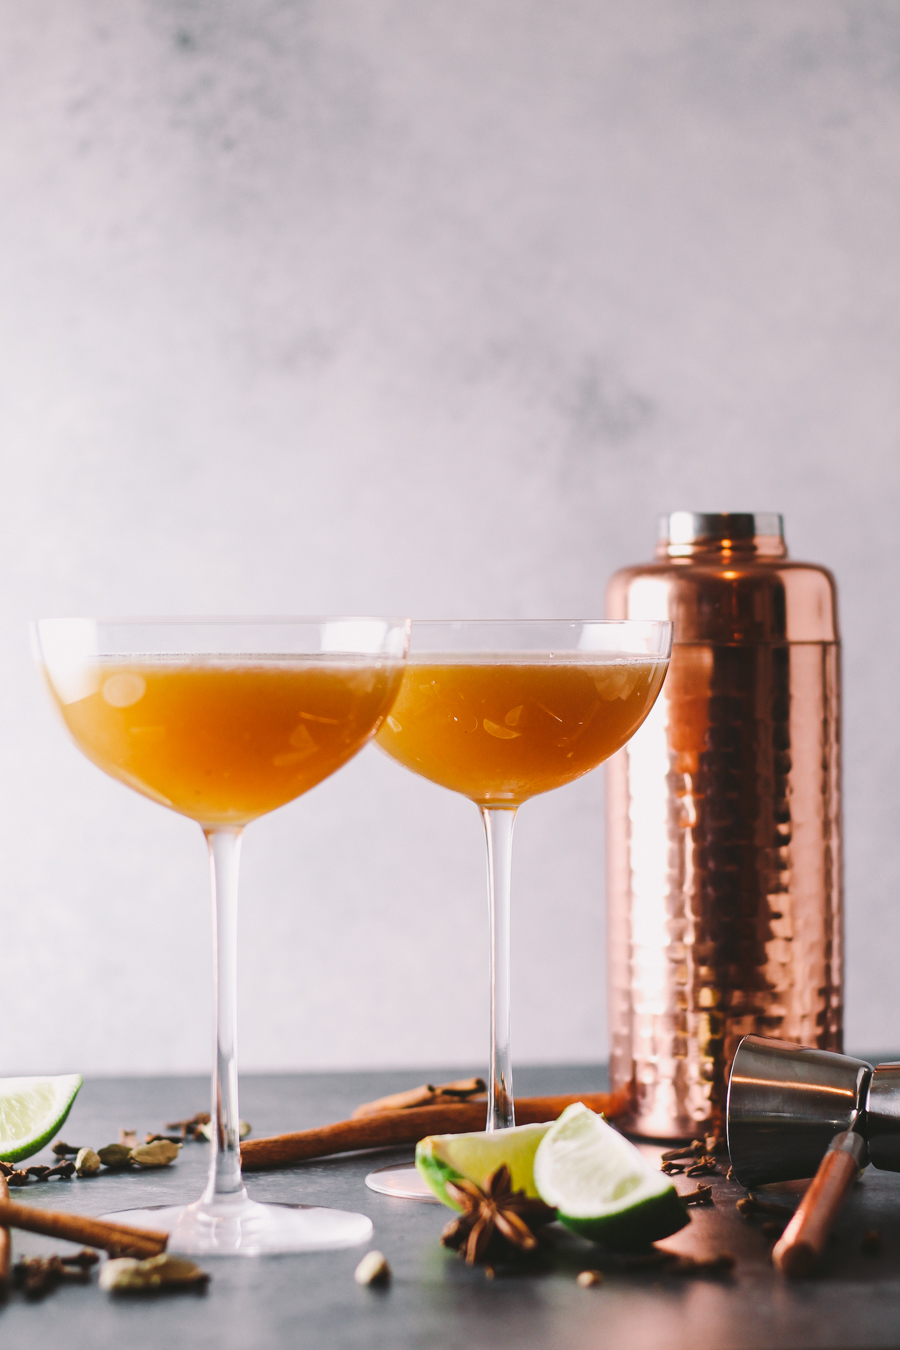 chai cocktail | cocktail | hygge ideas | date night | a chai cocktail with golden raisin-infused spiced rum & a homemade vanilla chai simple syrup. this chai cocktail is just as perfect for date night at home as it is for celebrating with friends & loved ones this winter season.